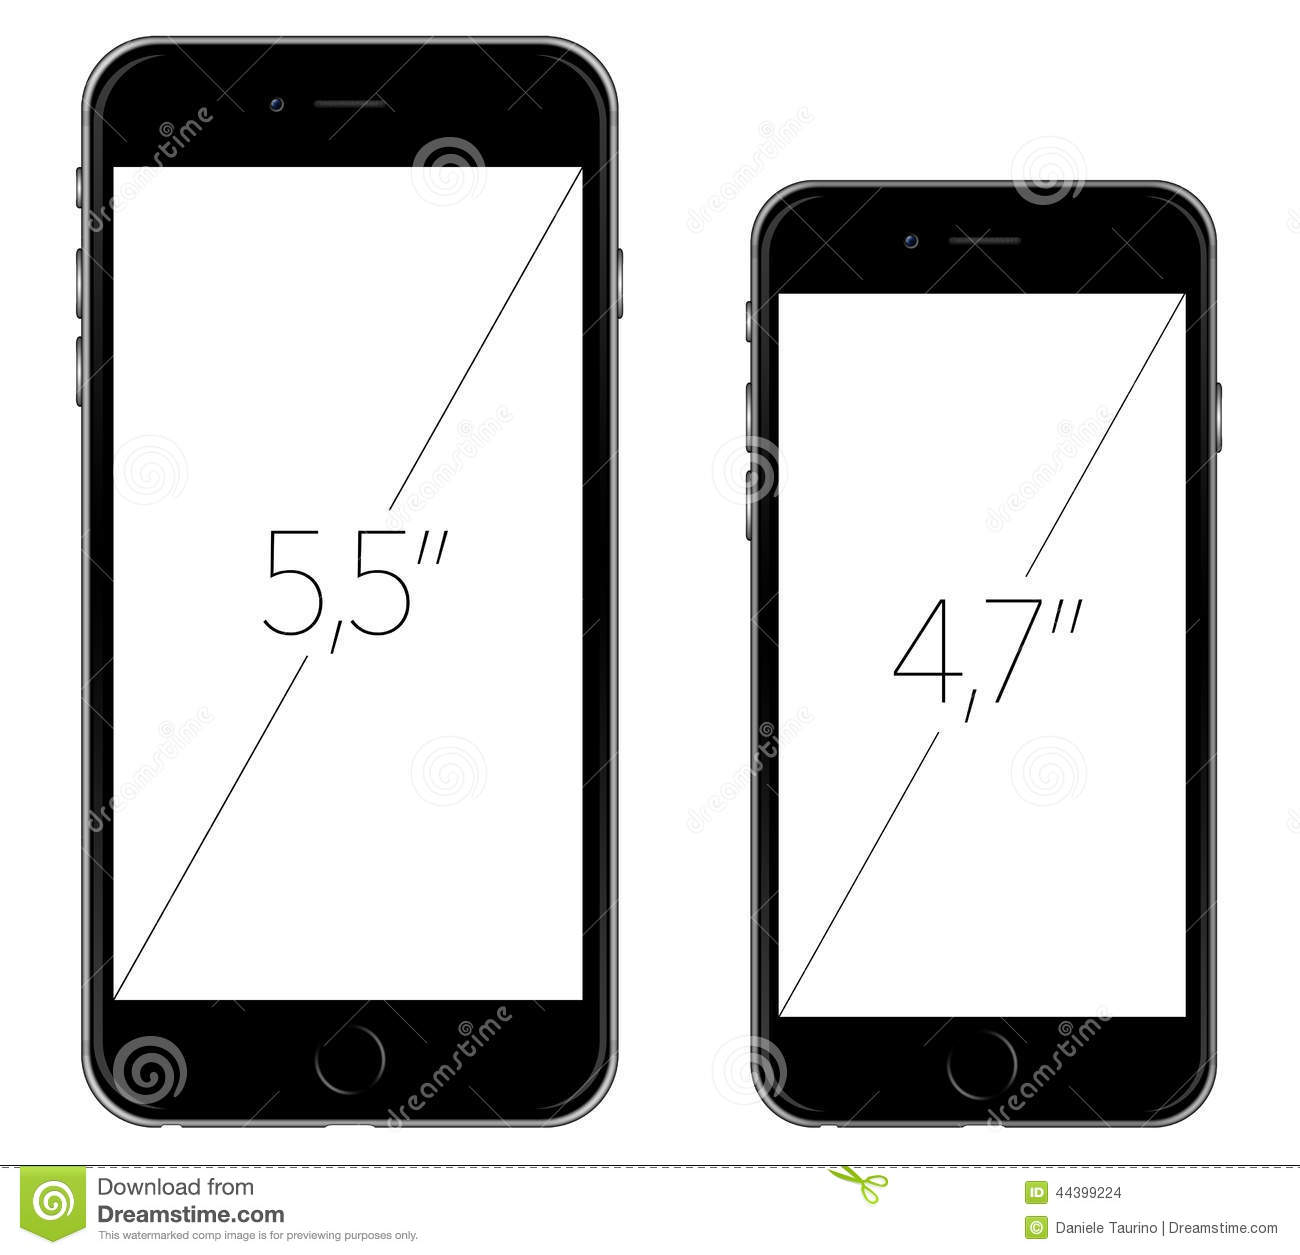 Iphone 6 clipart dimensions graphic freeuse library Iphone clipart dimension - ClipartFox graphic freeuse library